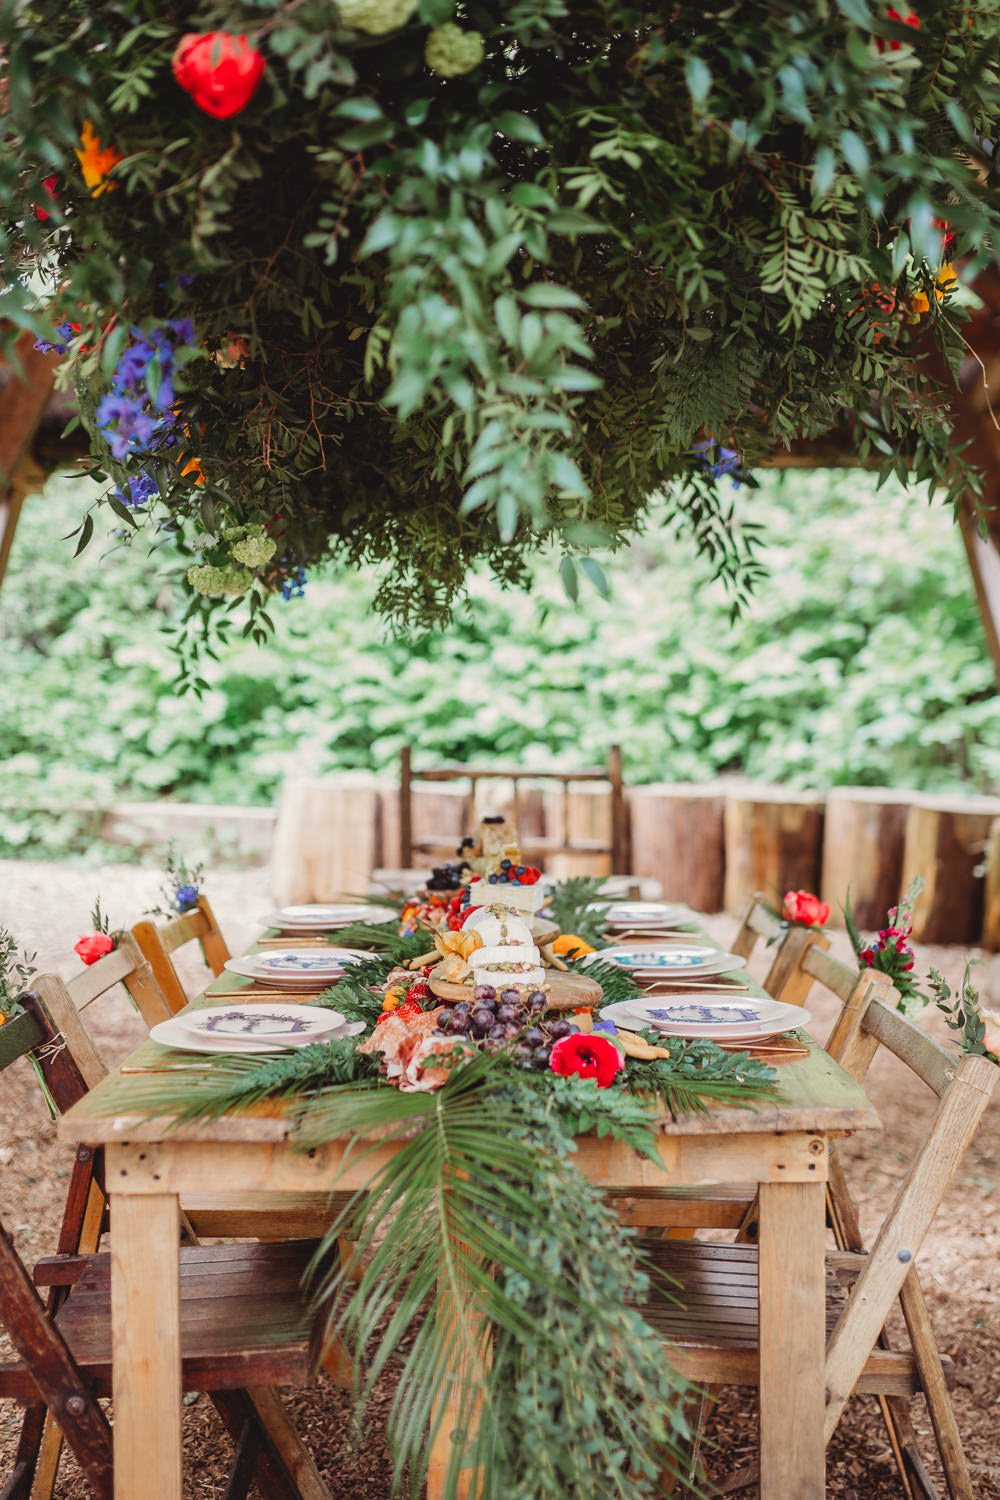 Table Flowers Garland Swag Runner Greenery Palm Leaves Tropical Colourful Arnos Vale Weddings Ideas When Charlie Met Hannah Photography